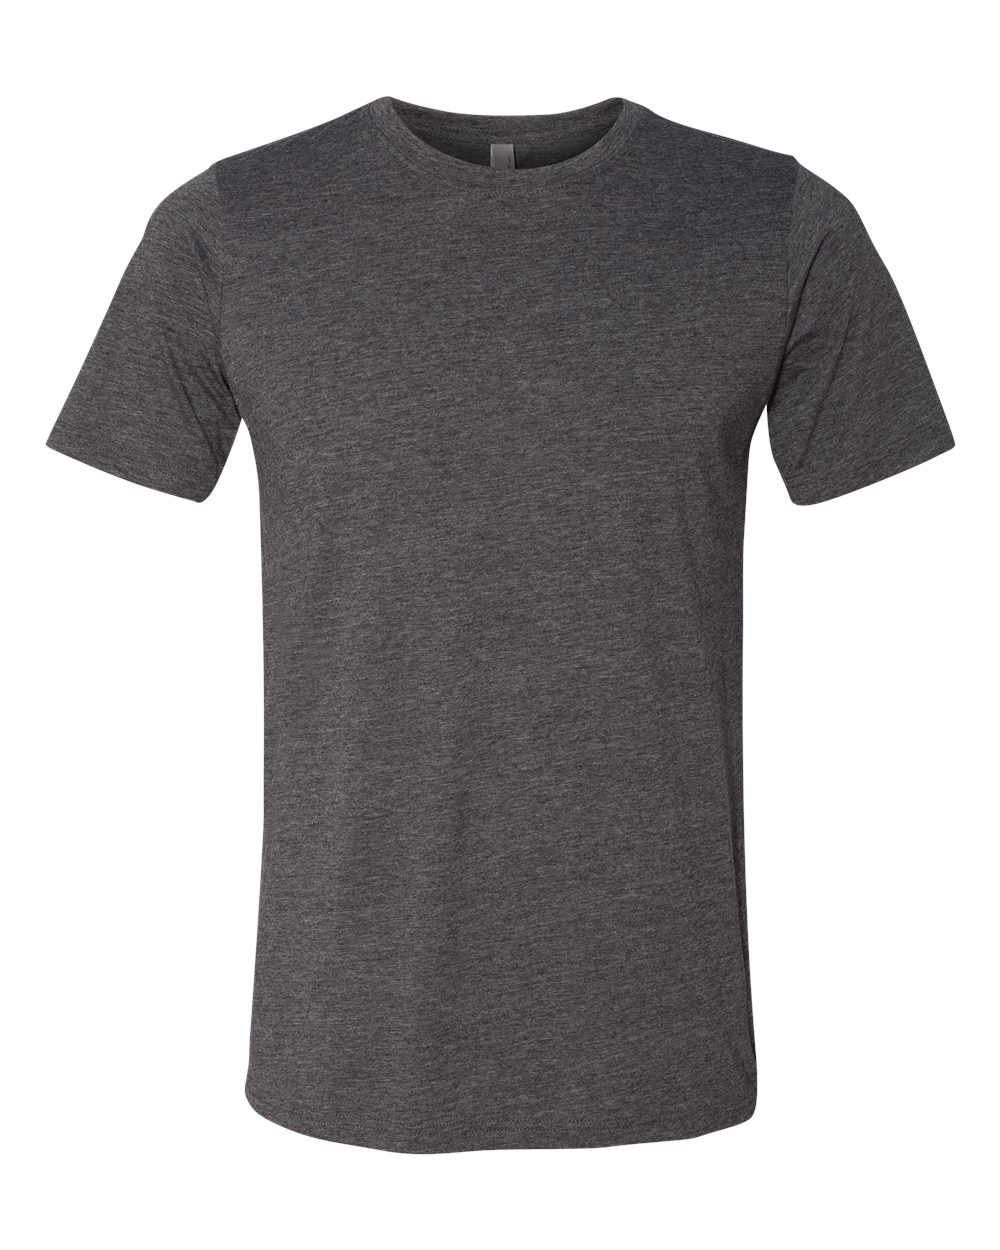 Next_Level_6200_Charcoal_Front_High.jpg